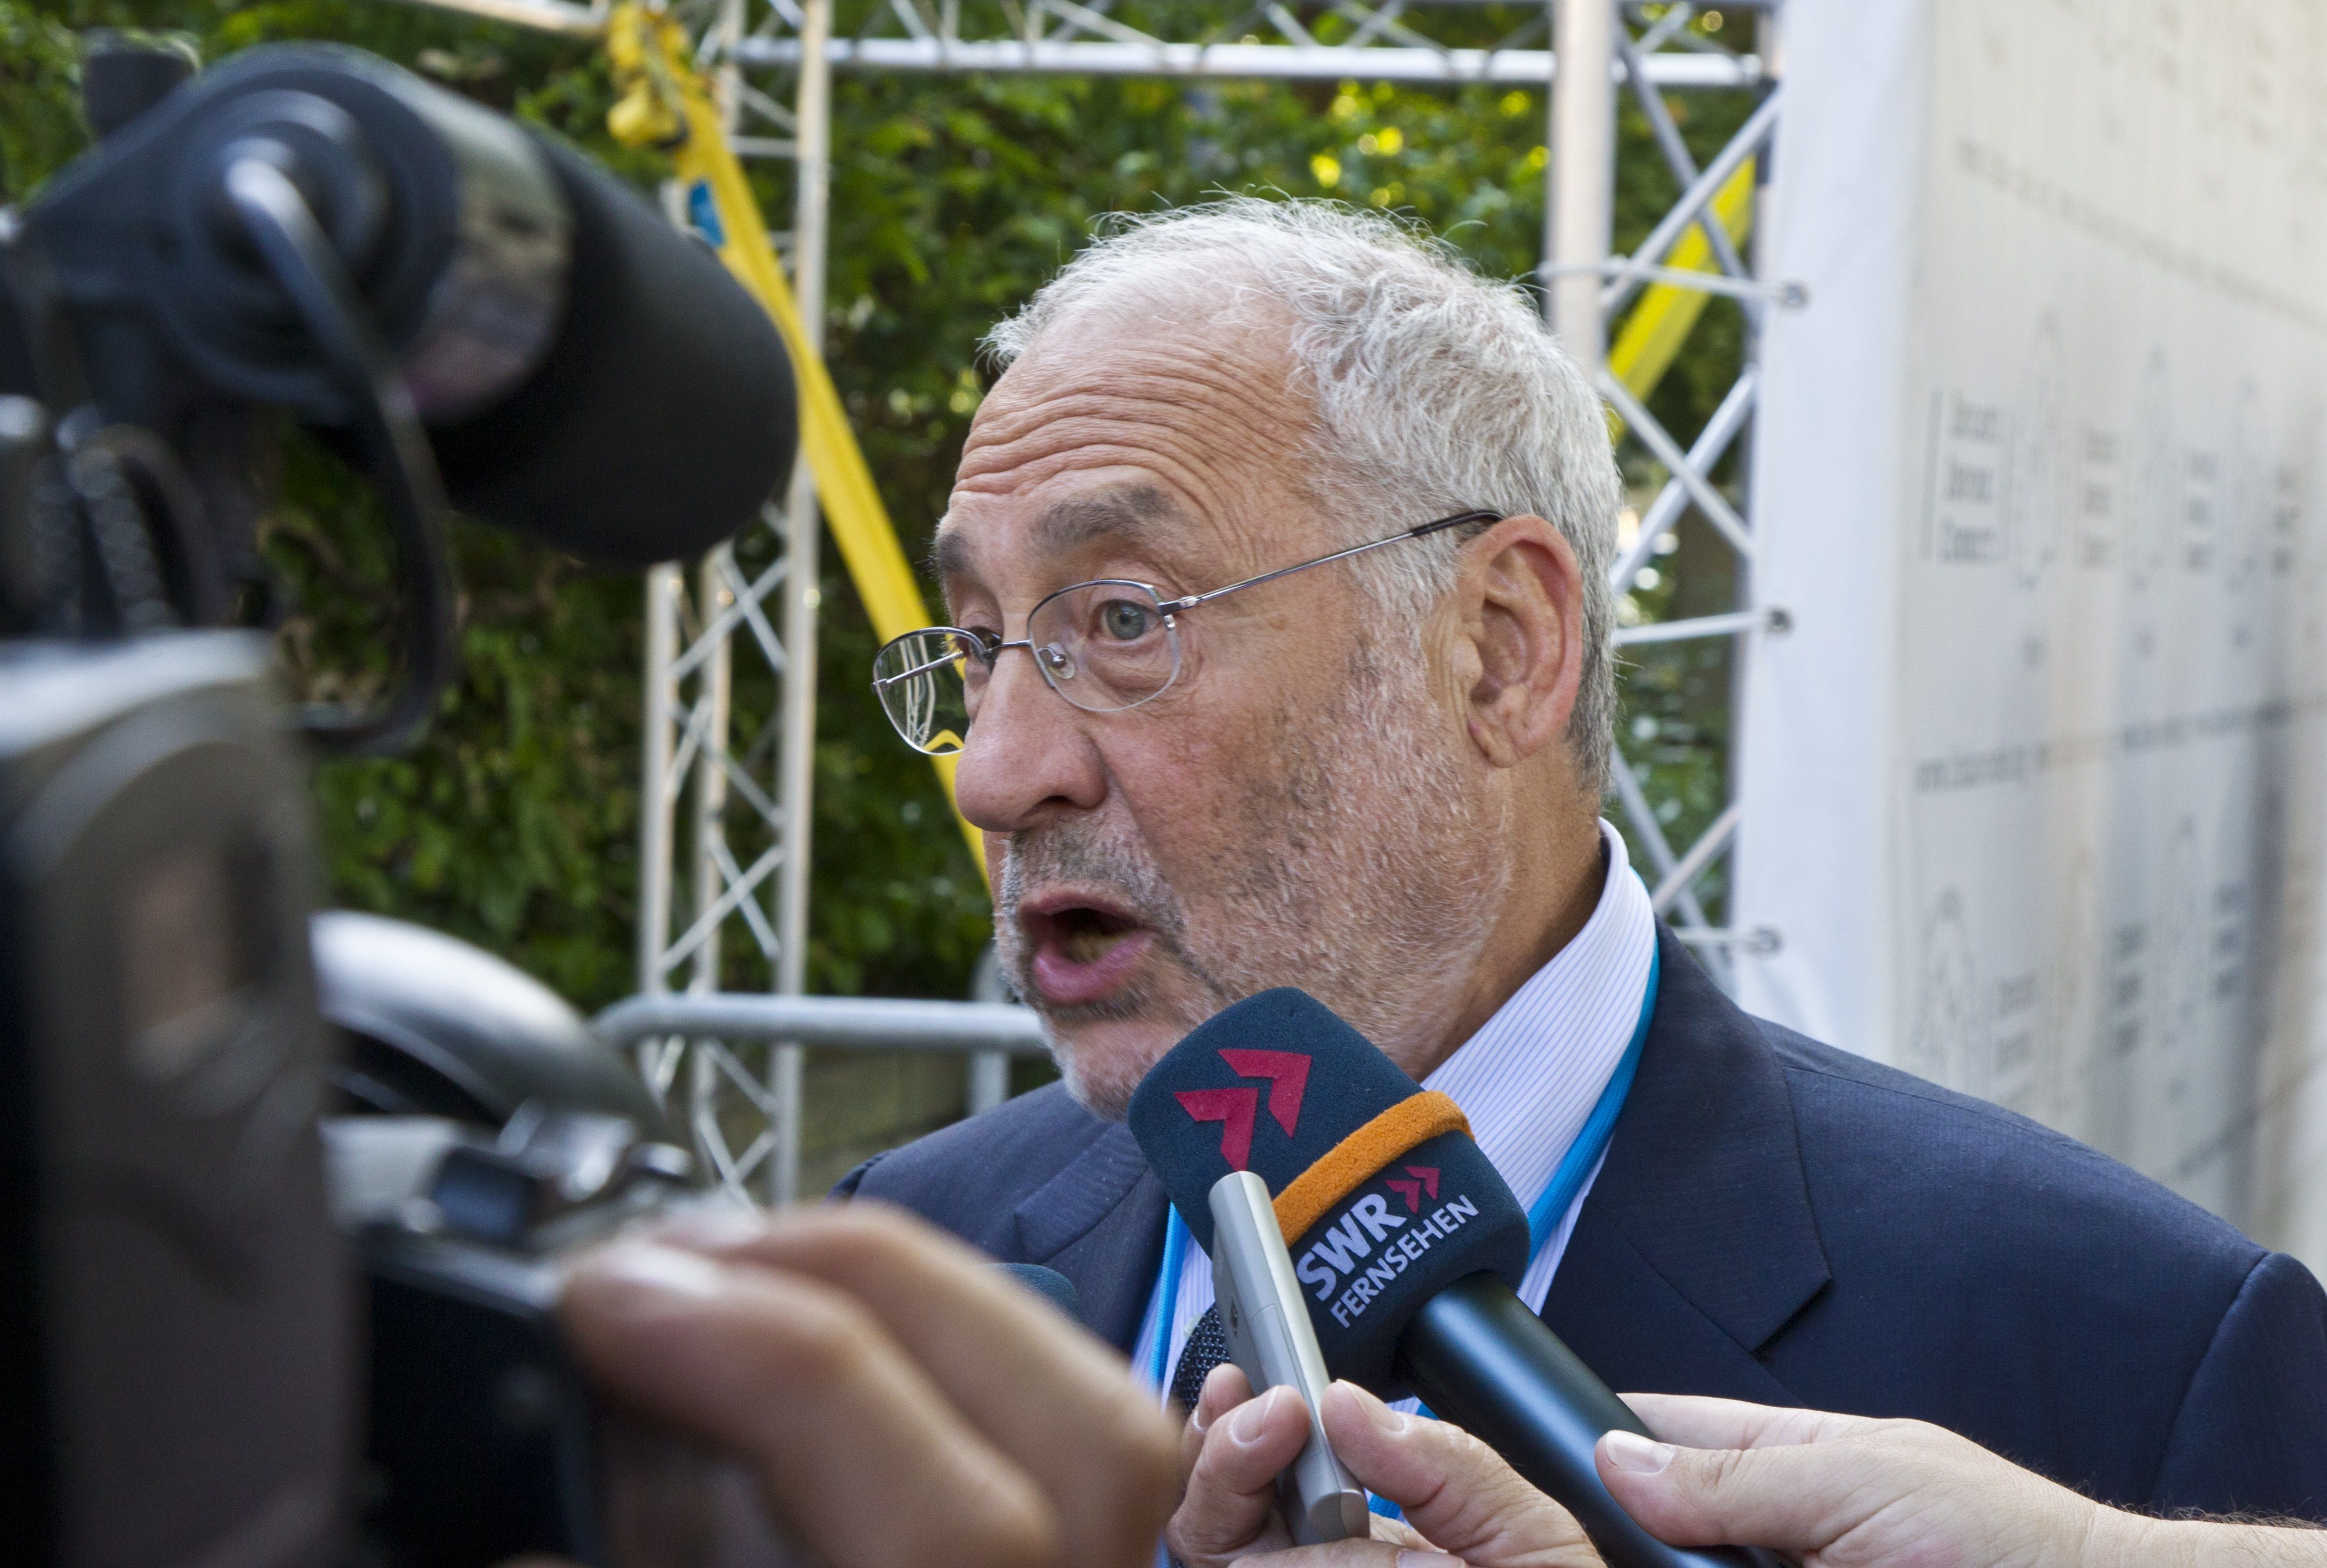 Joseph Stiglitz in 2011 during the 4th Lindau Meeting on Economic Sciences. Picture/Credit: Christian Flemming/Lindau Nobel Laureate Meetings